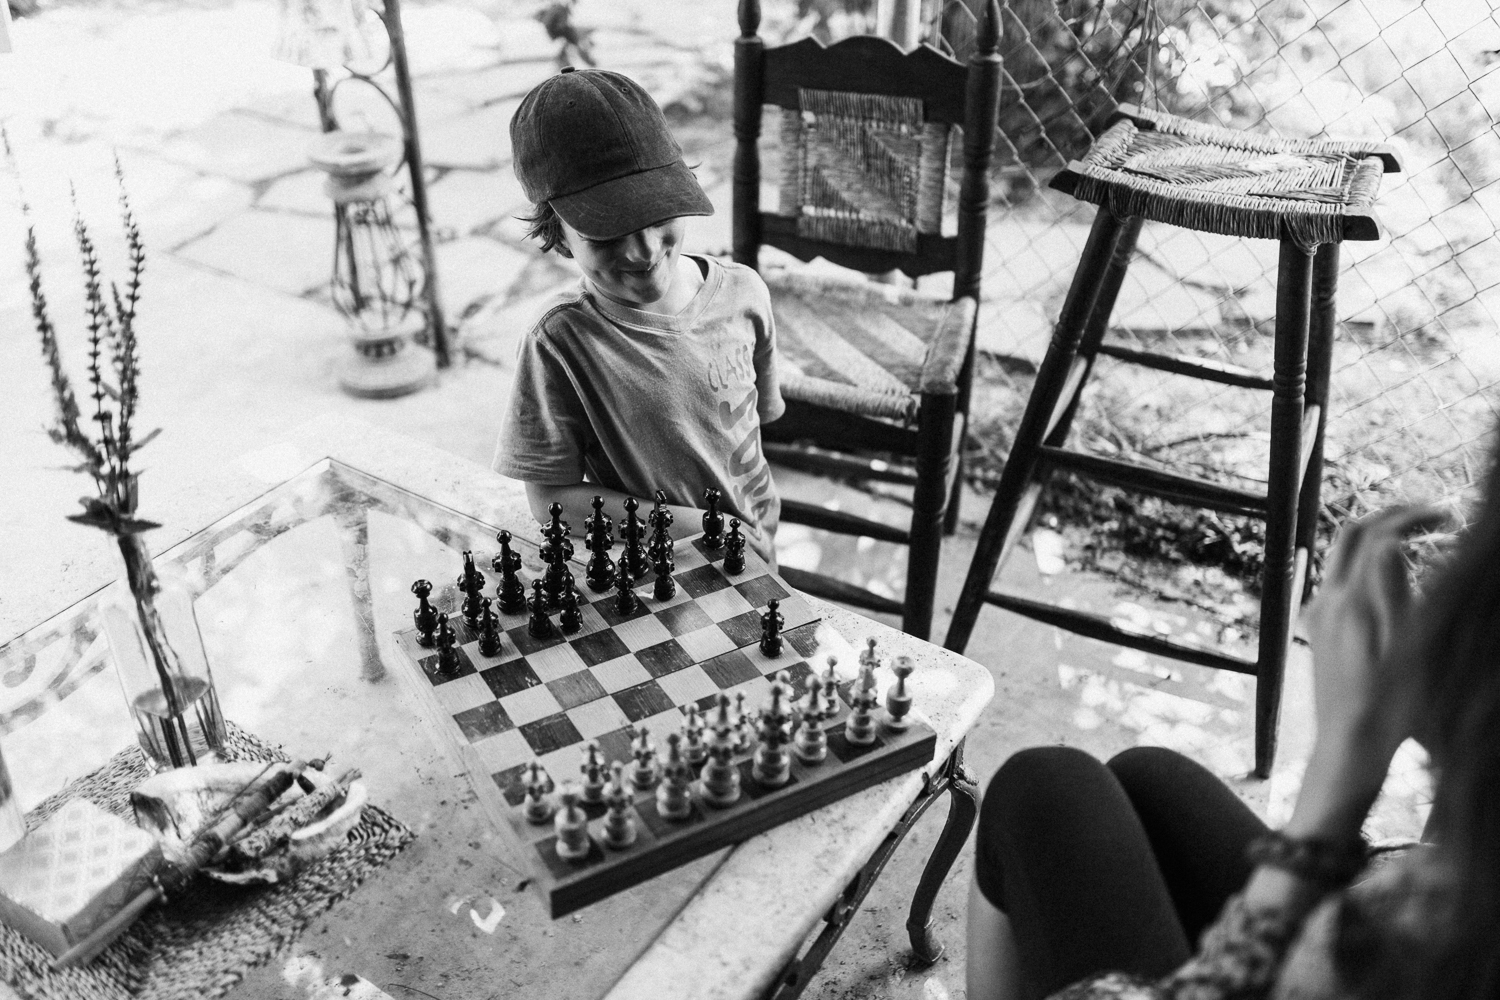 black-and-white-boy-chess-outdoors-in-home-family-session-with-jen-fairchild-photography-in-sugarhouse-saltlakecity-utah